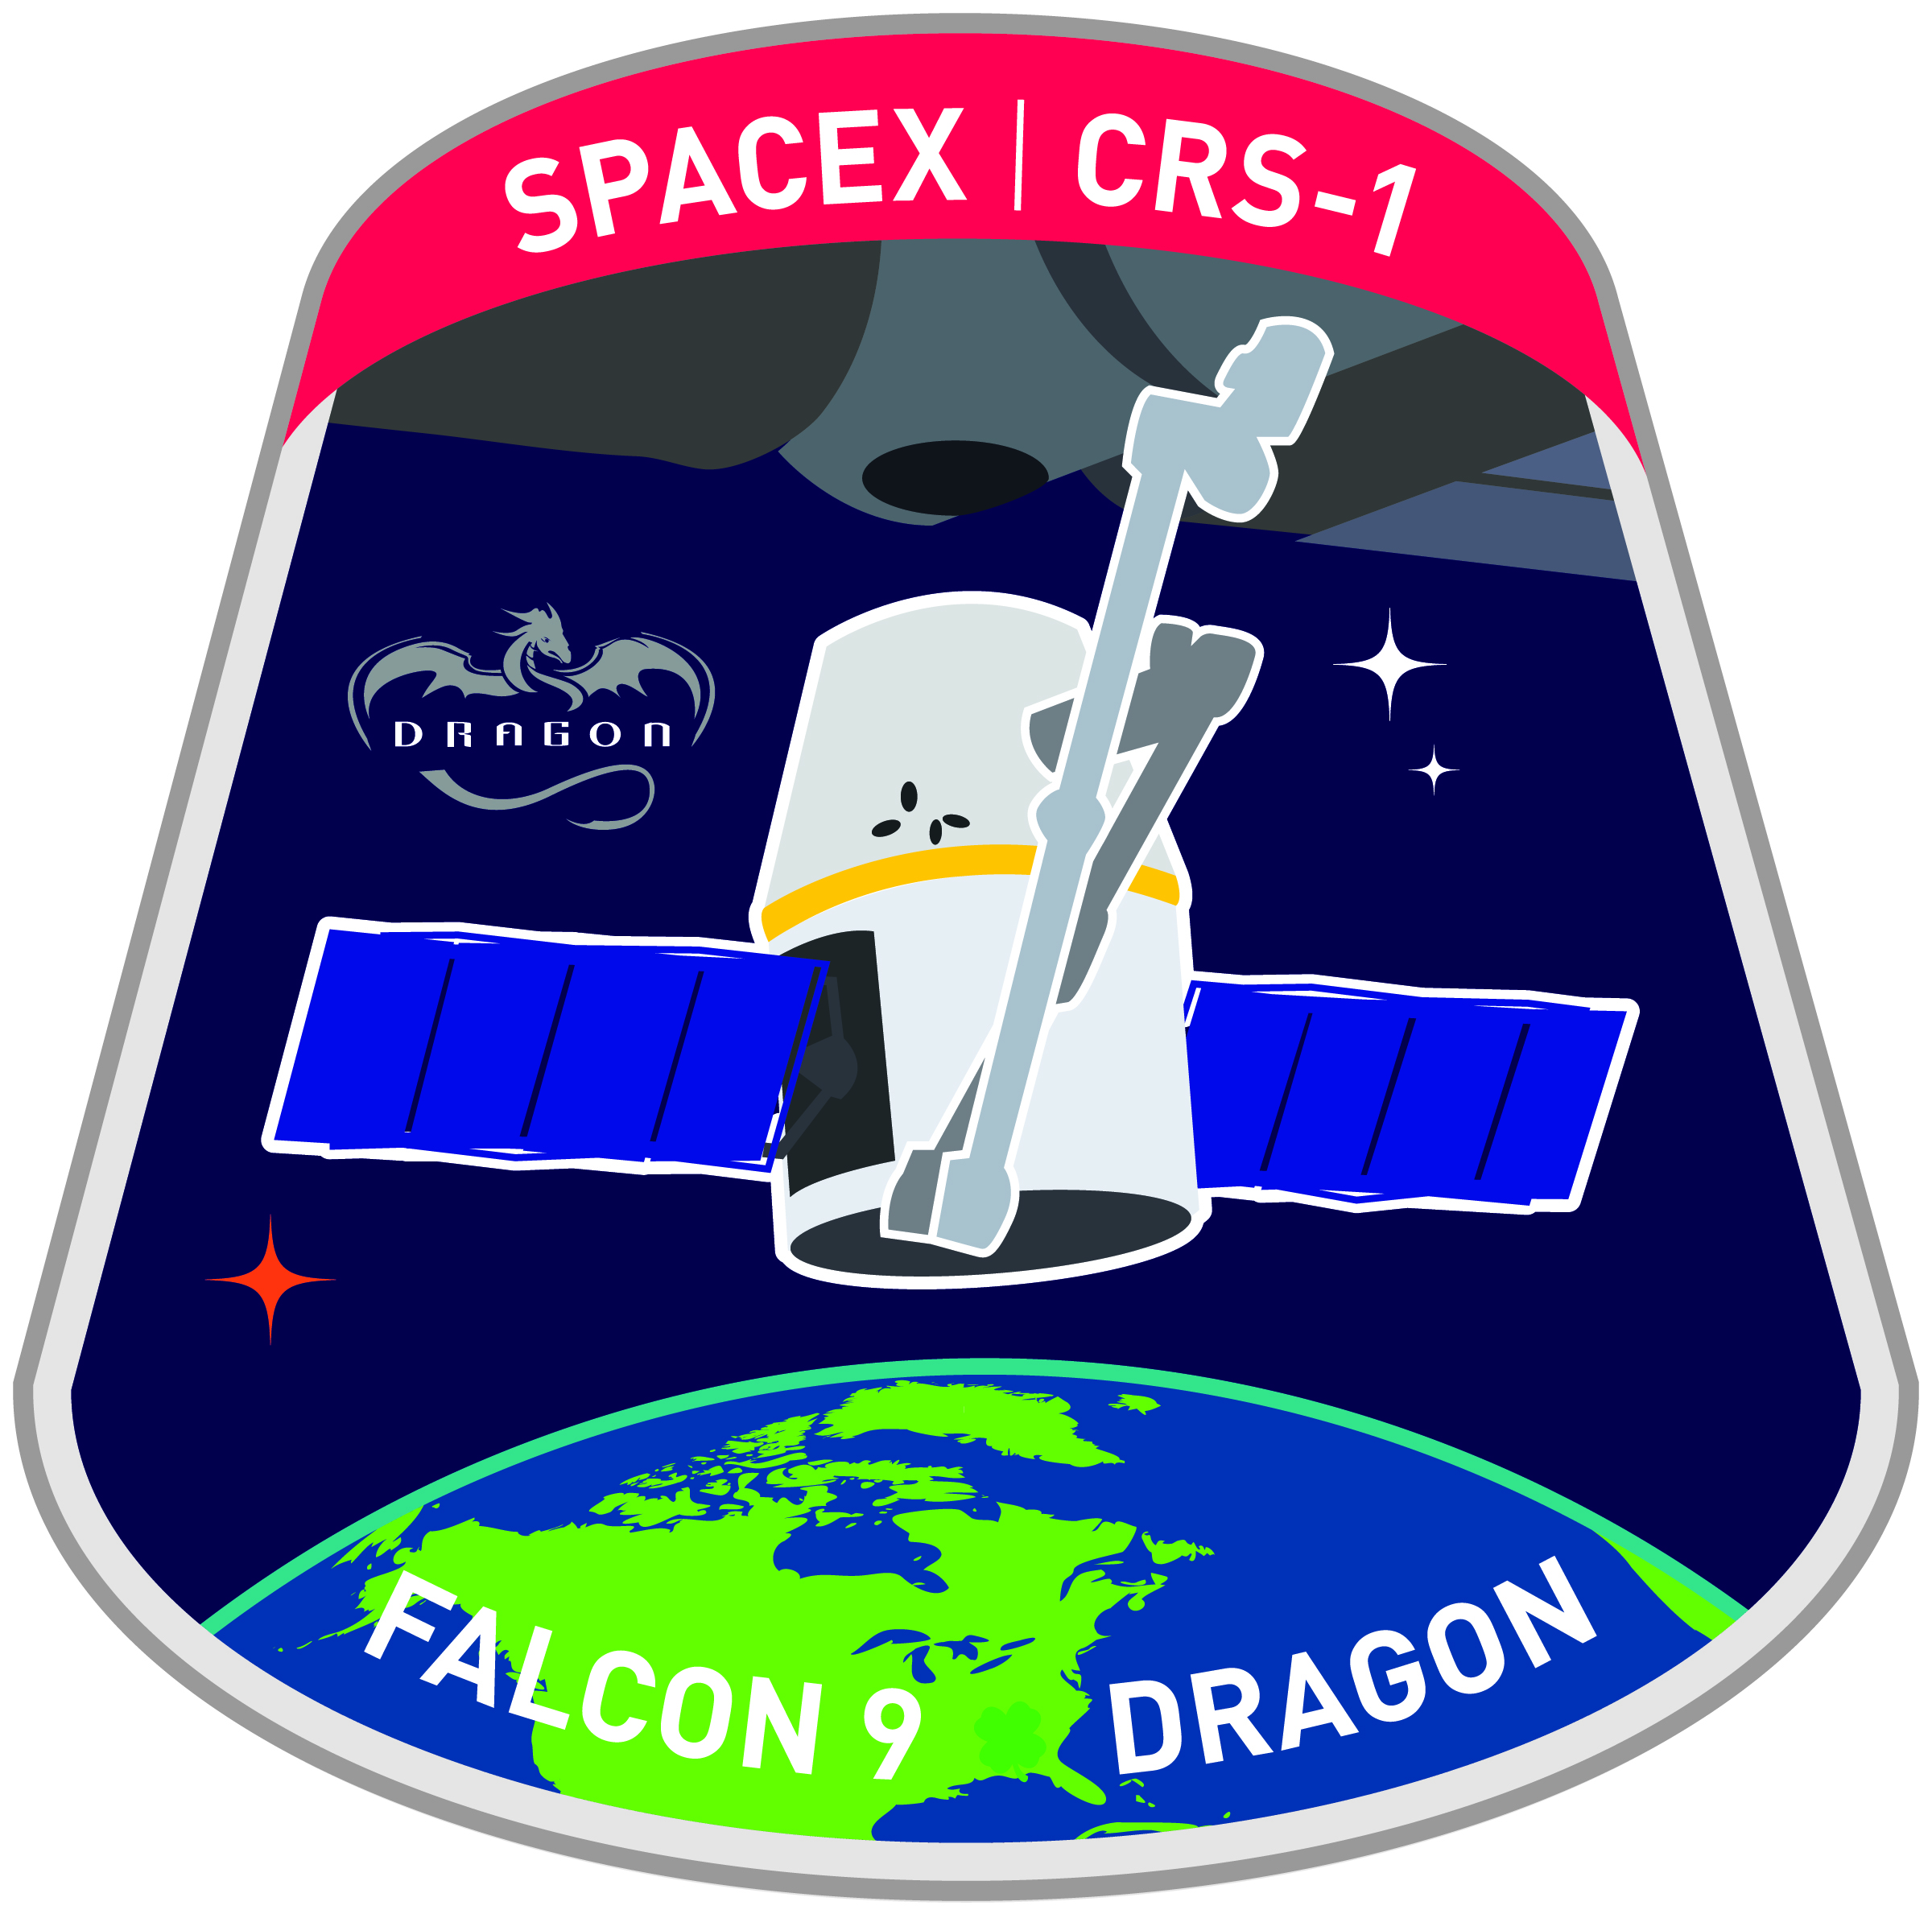 spacex crs 4 logo - photo #12